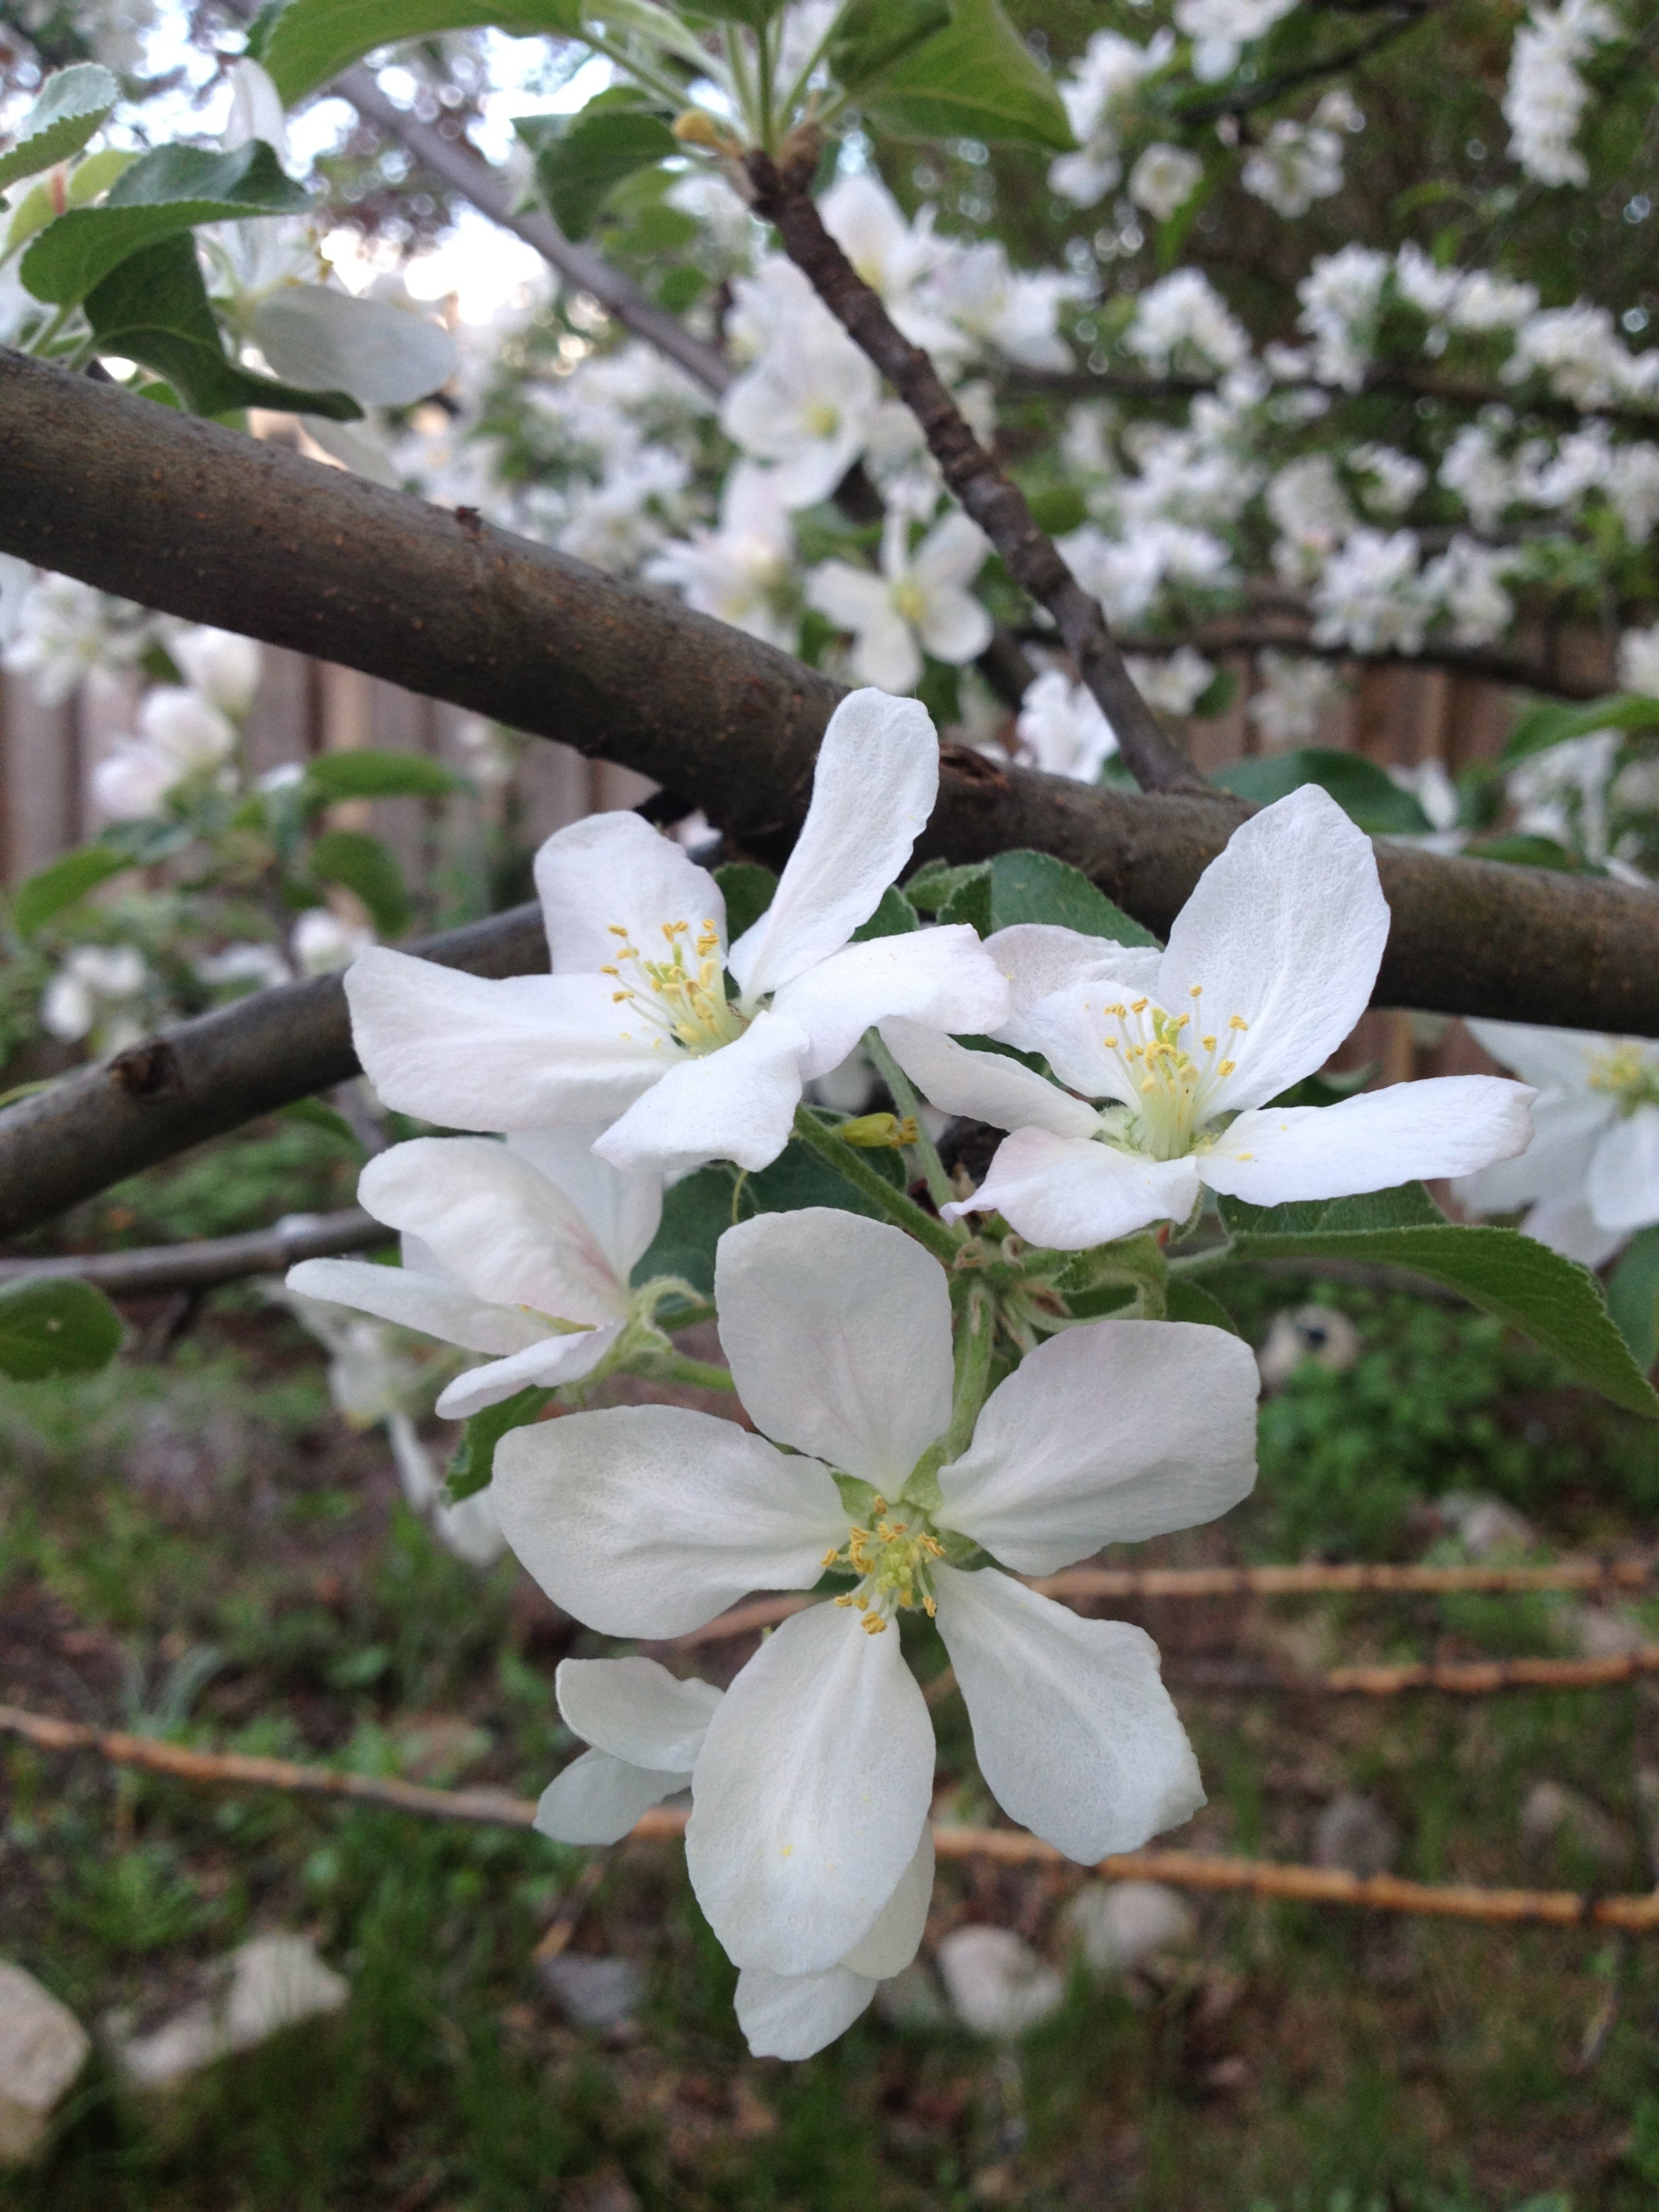 Apple blossoms by Sara